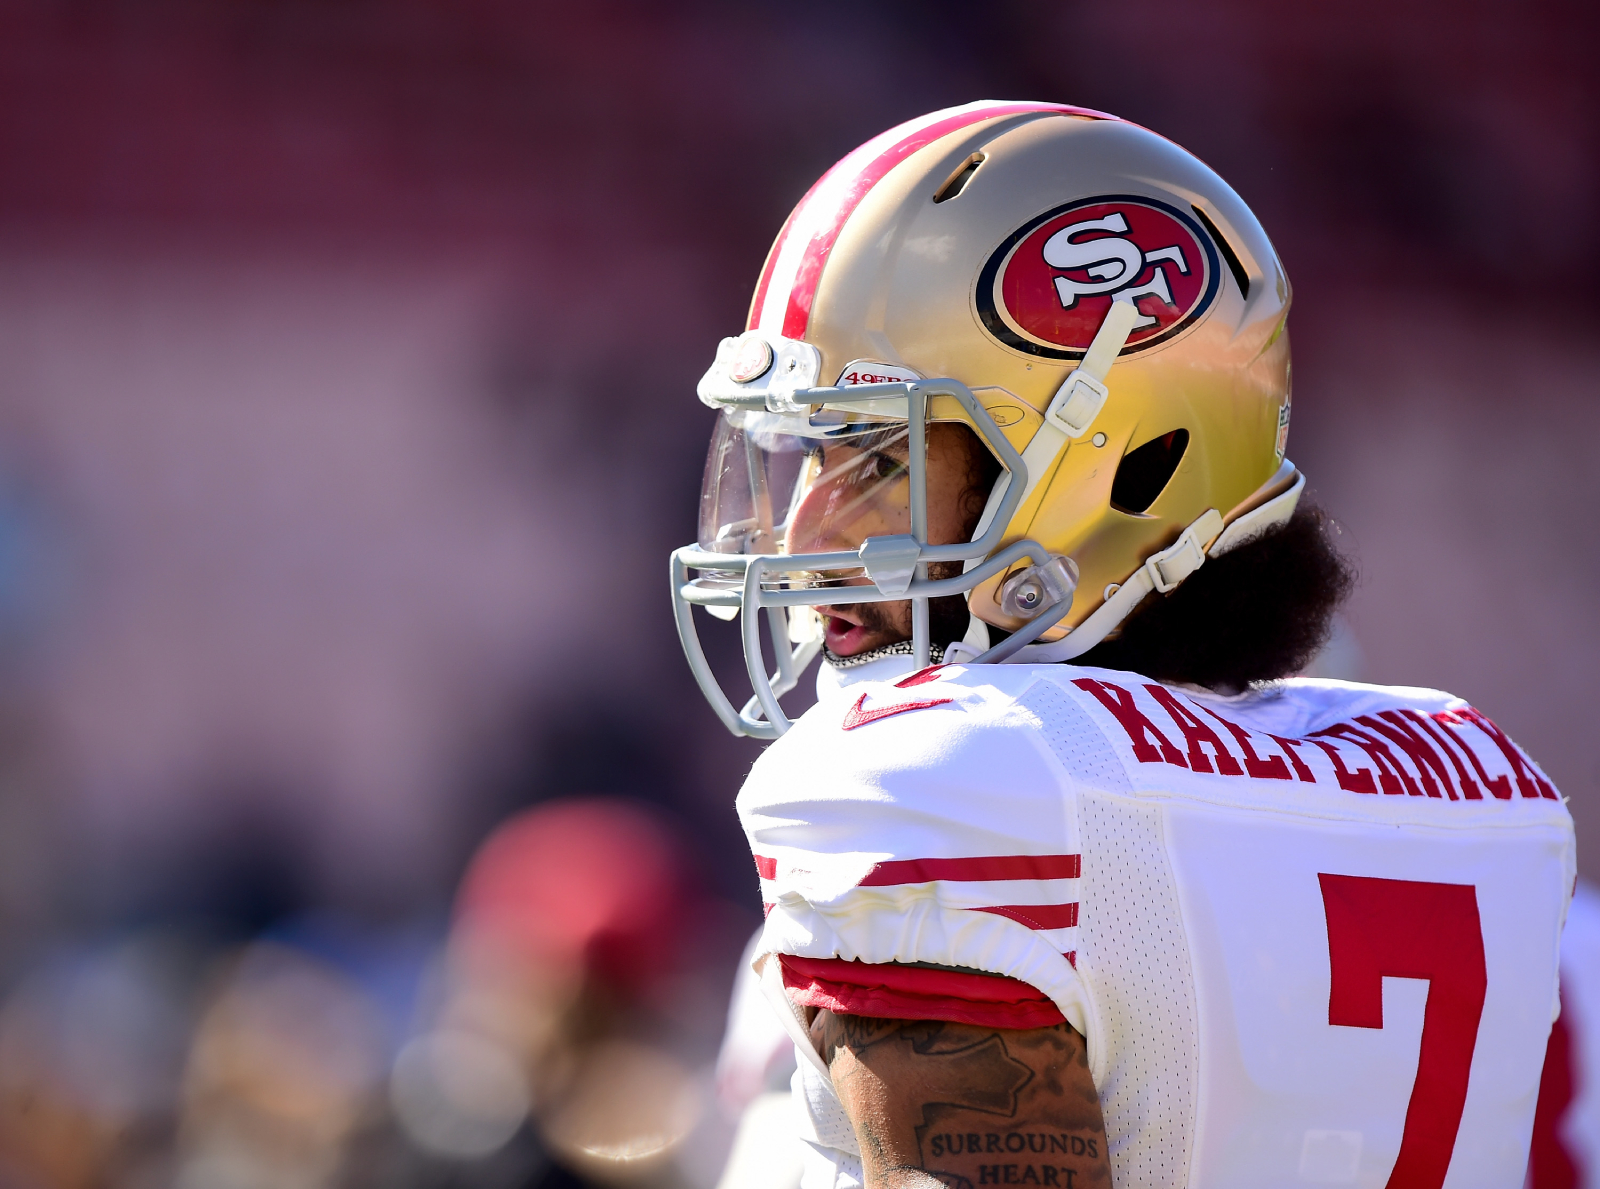 Colin Kaepernick has not played in the NFL since the 2016 season. His organization just reminded people about why he should be in the league.